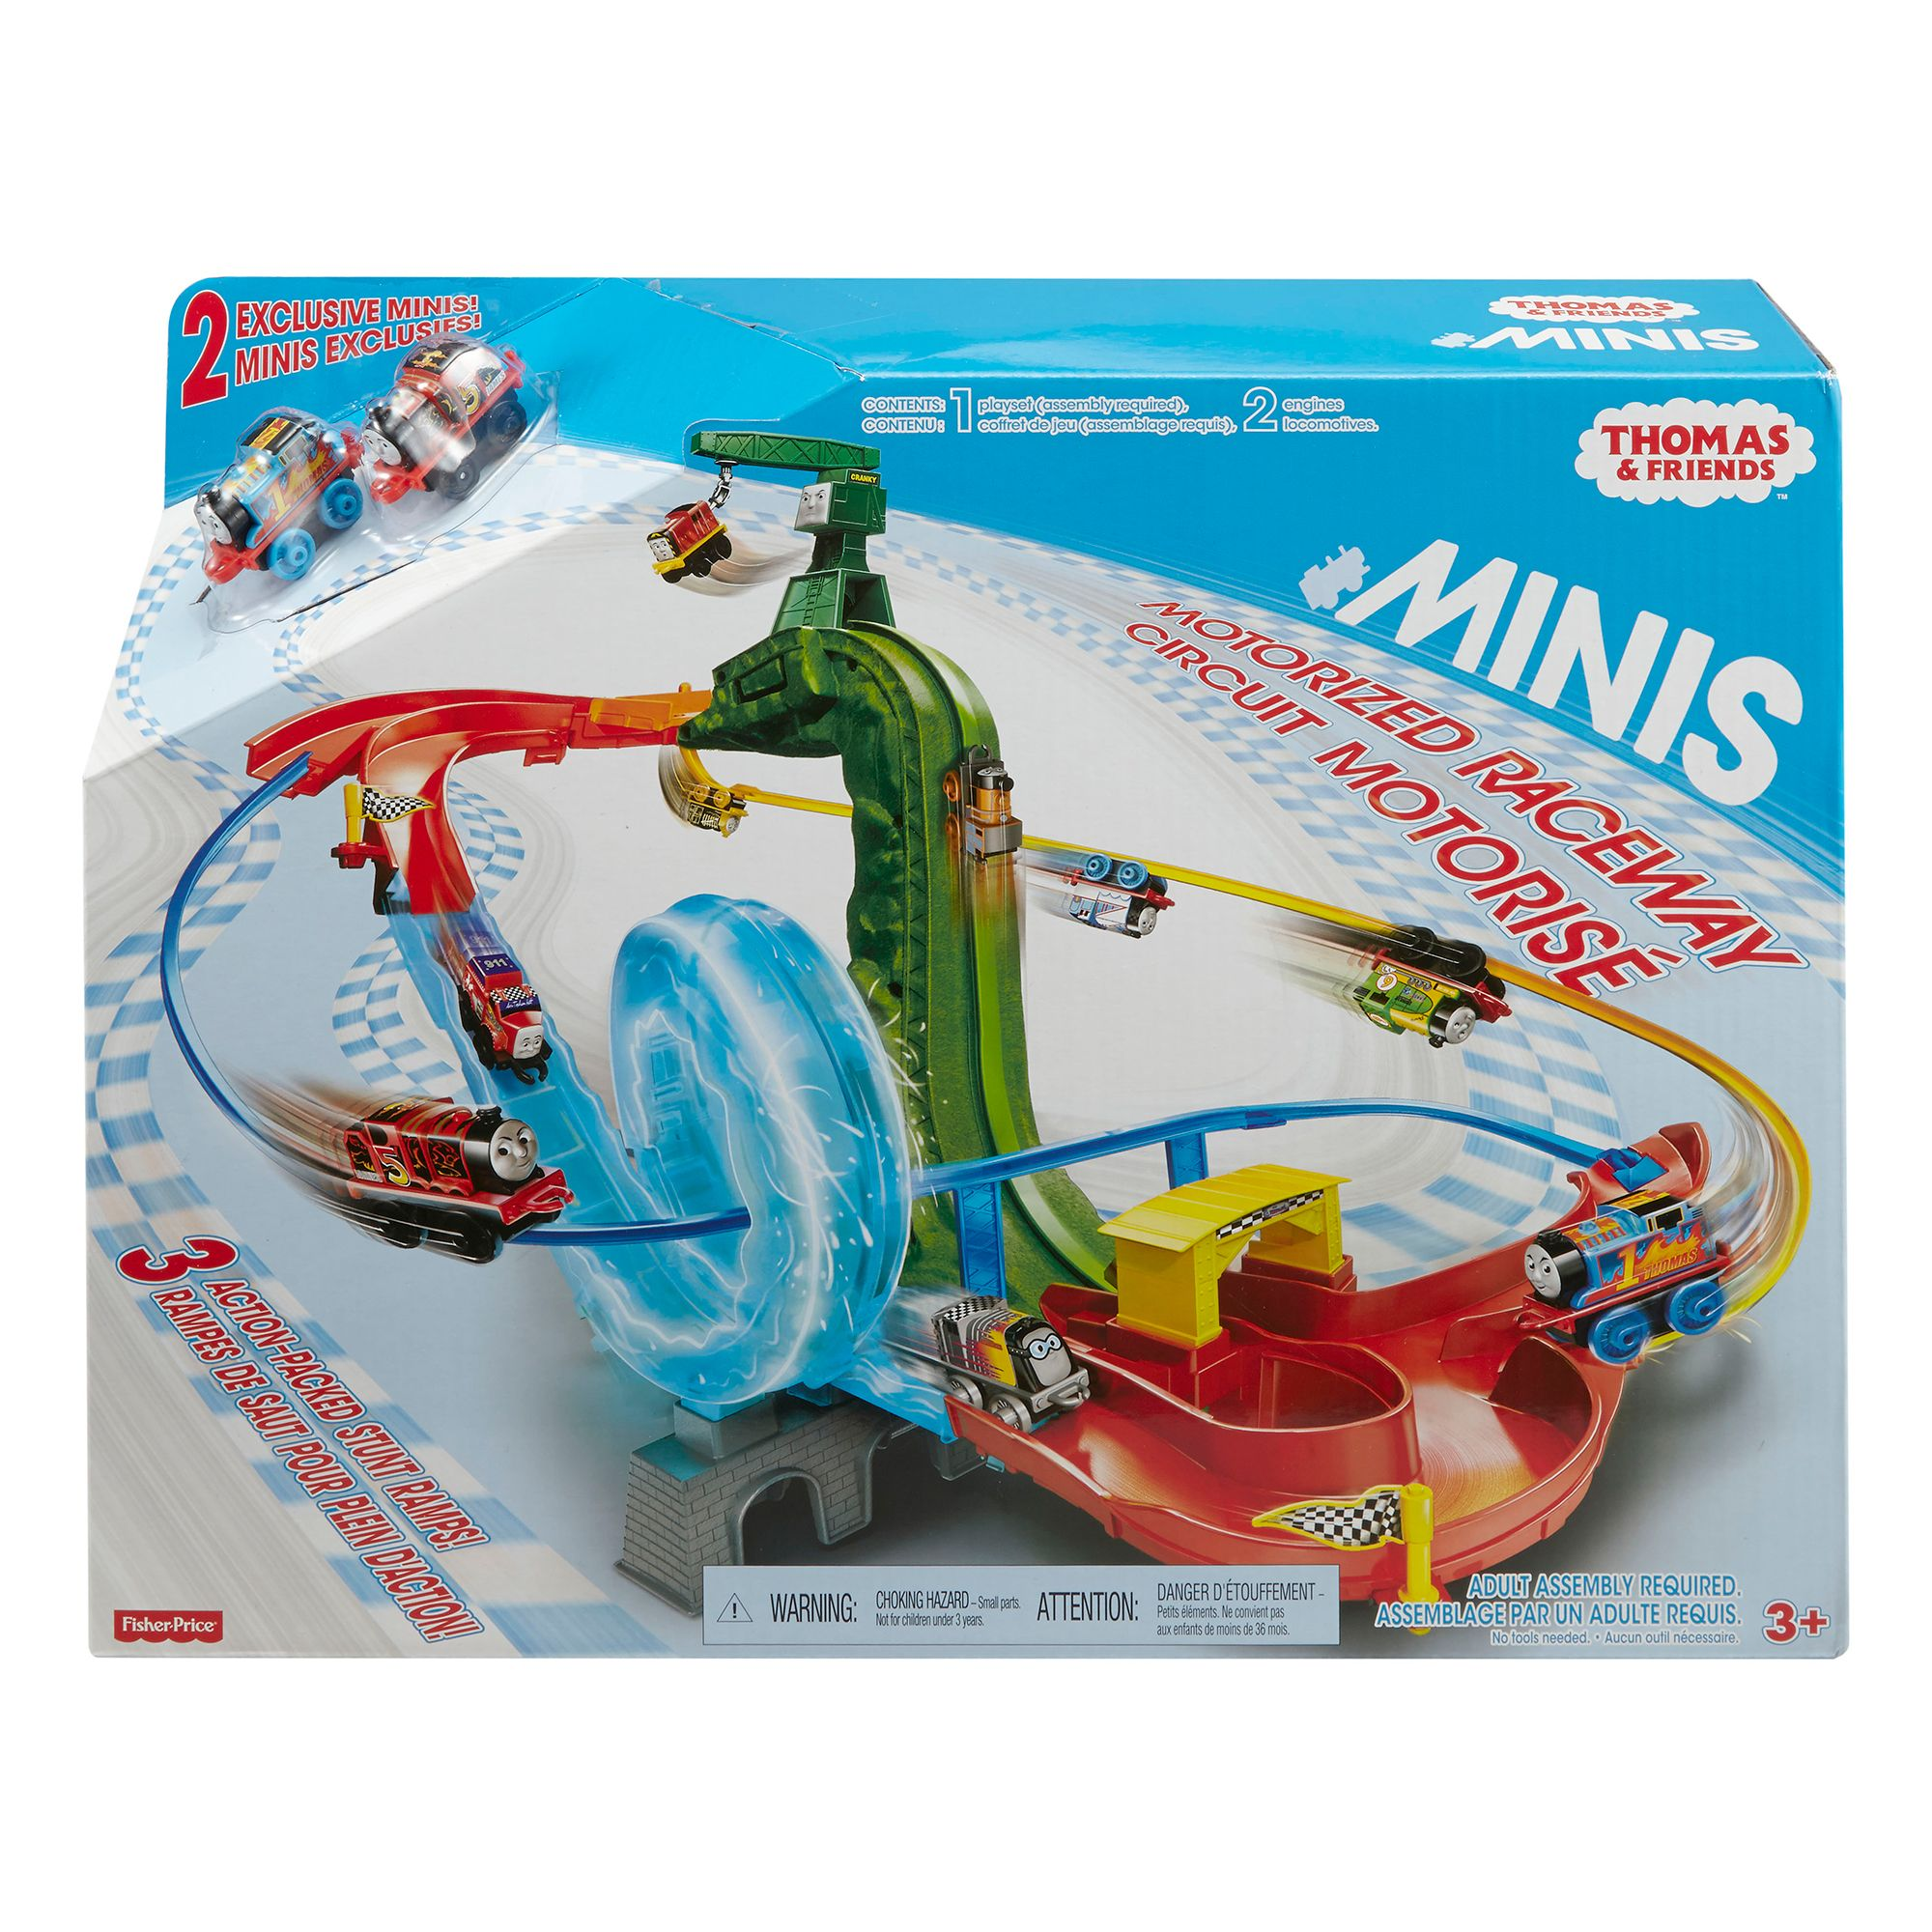 Thomas & Friends Minis Motorised Raceway